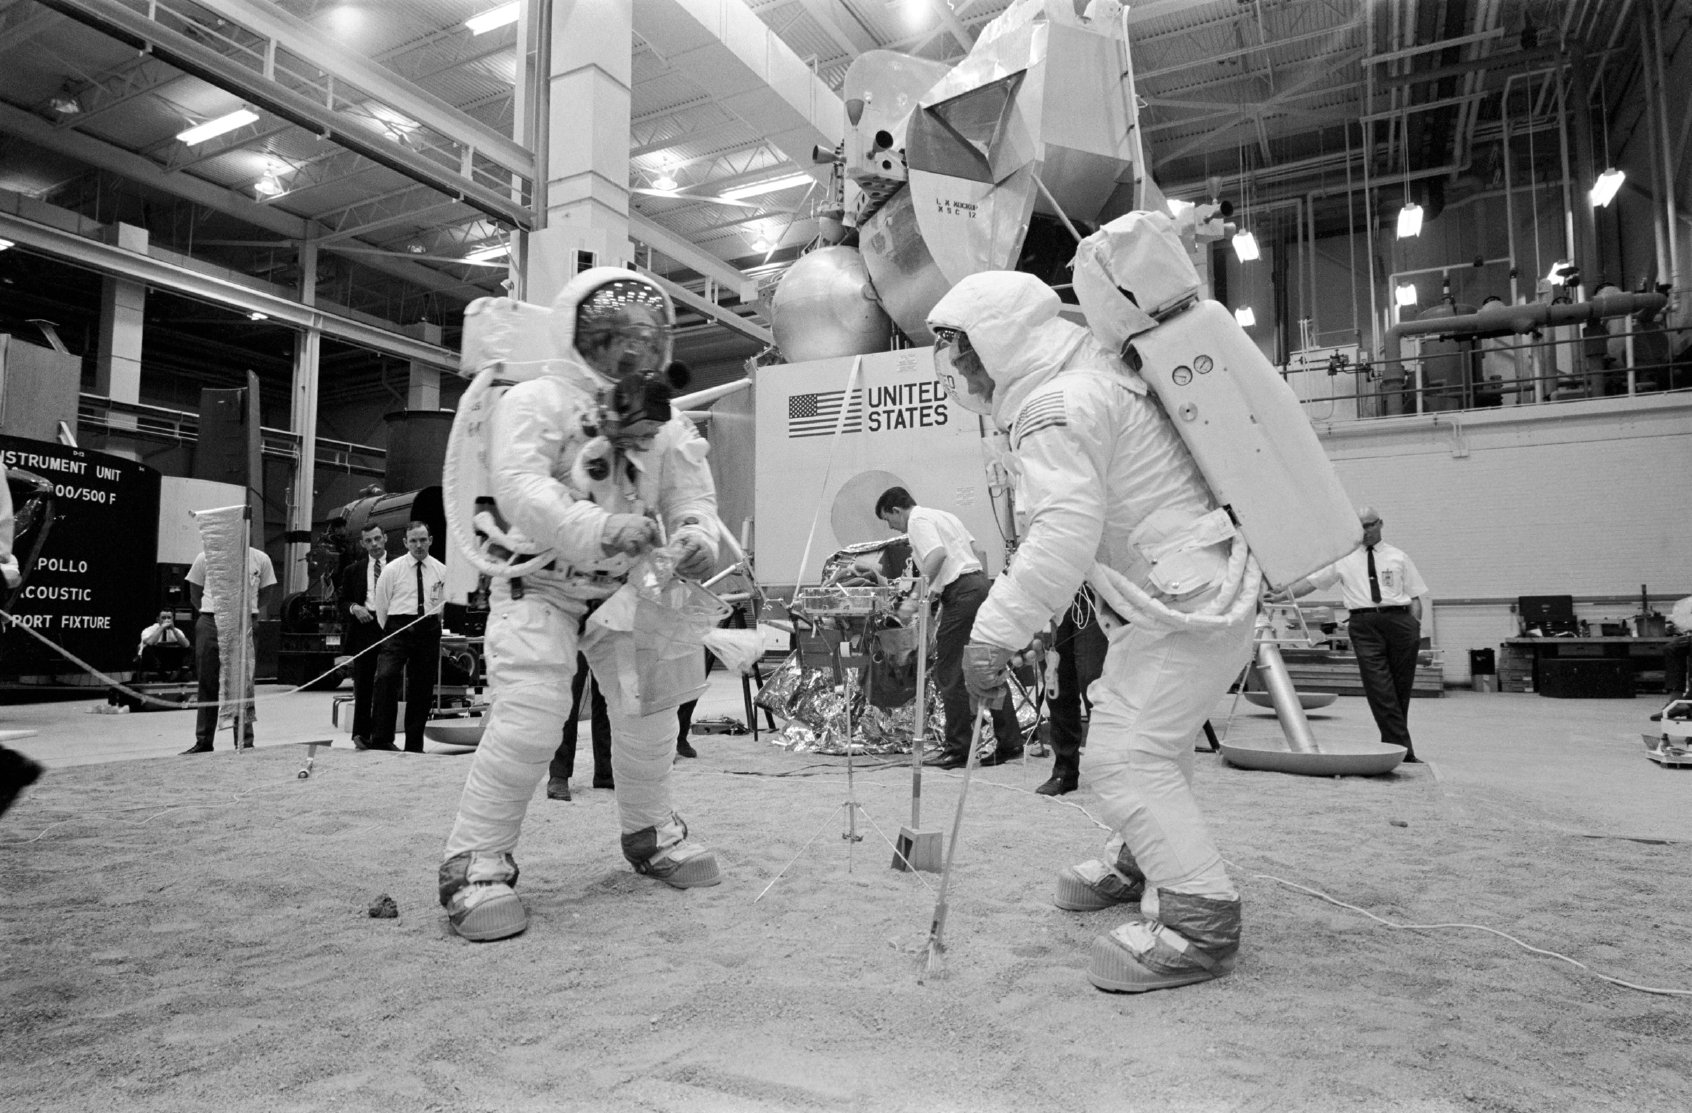 neil armstrong astronaut training - photo #18